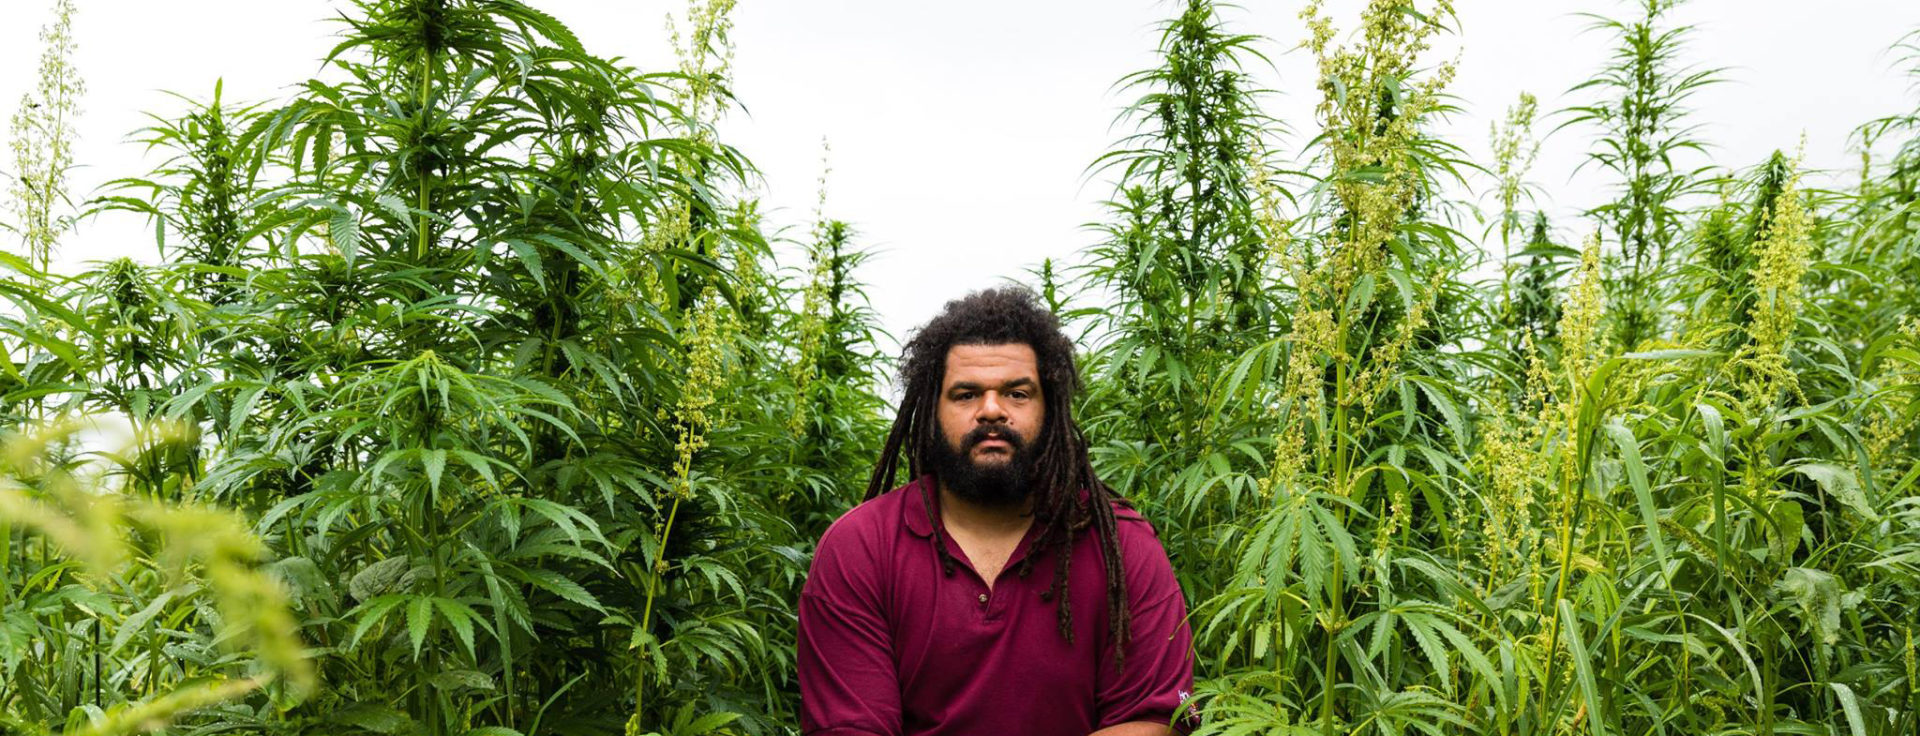 Man surrounded by cannabis plants